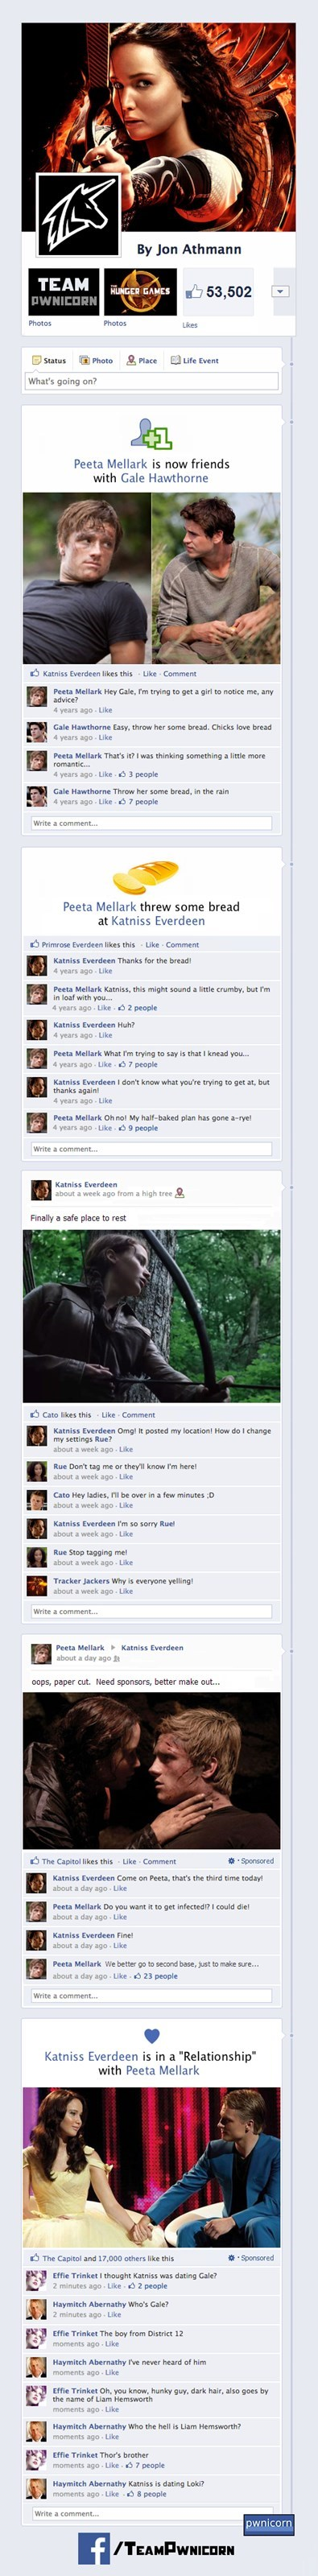 This is What The Hunger Games Would Look Like if It Took Place on Facebook